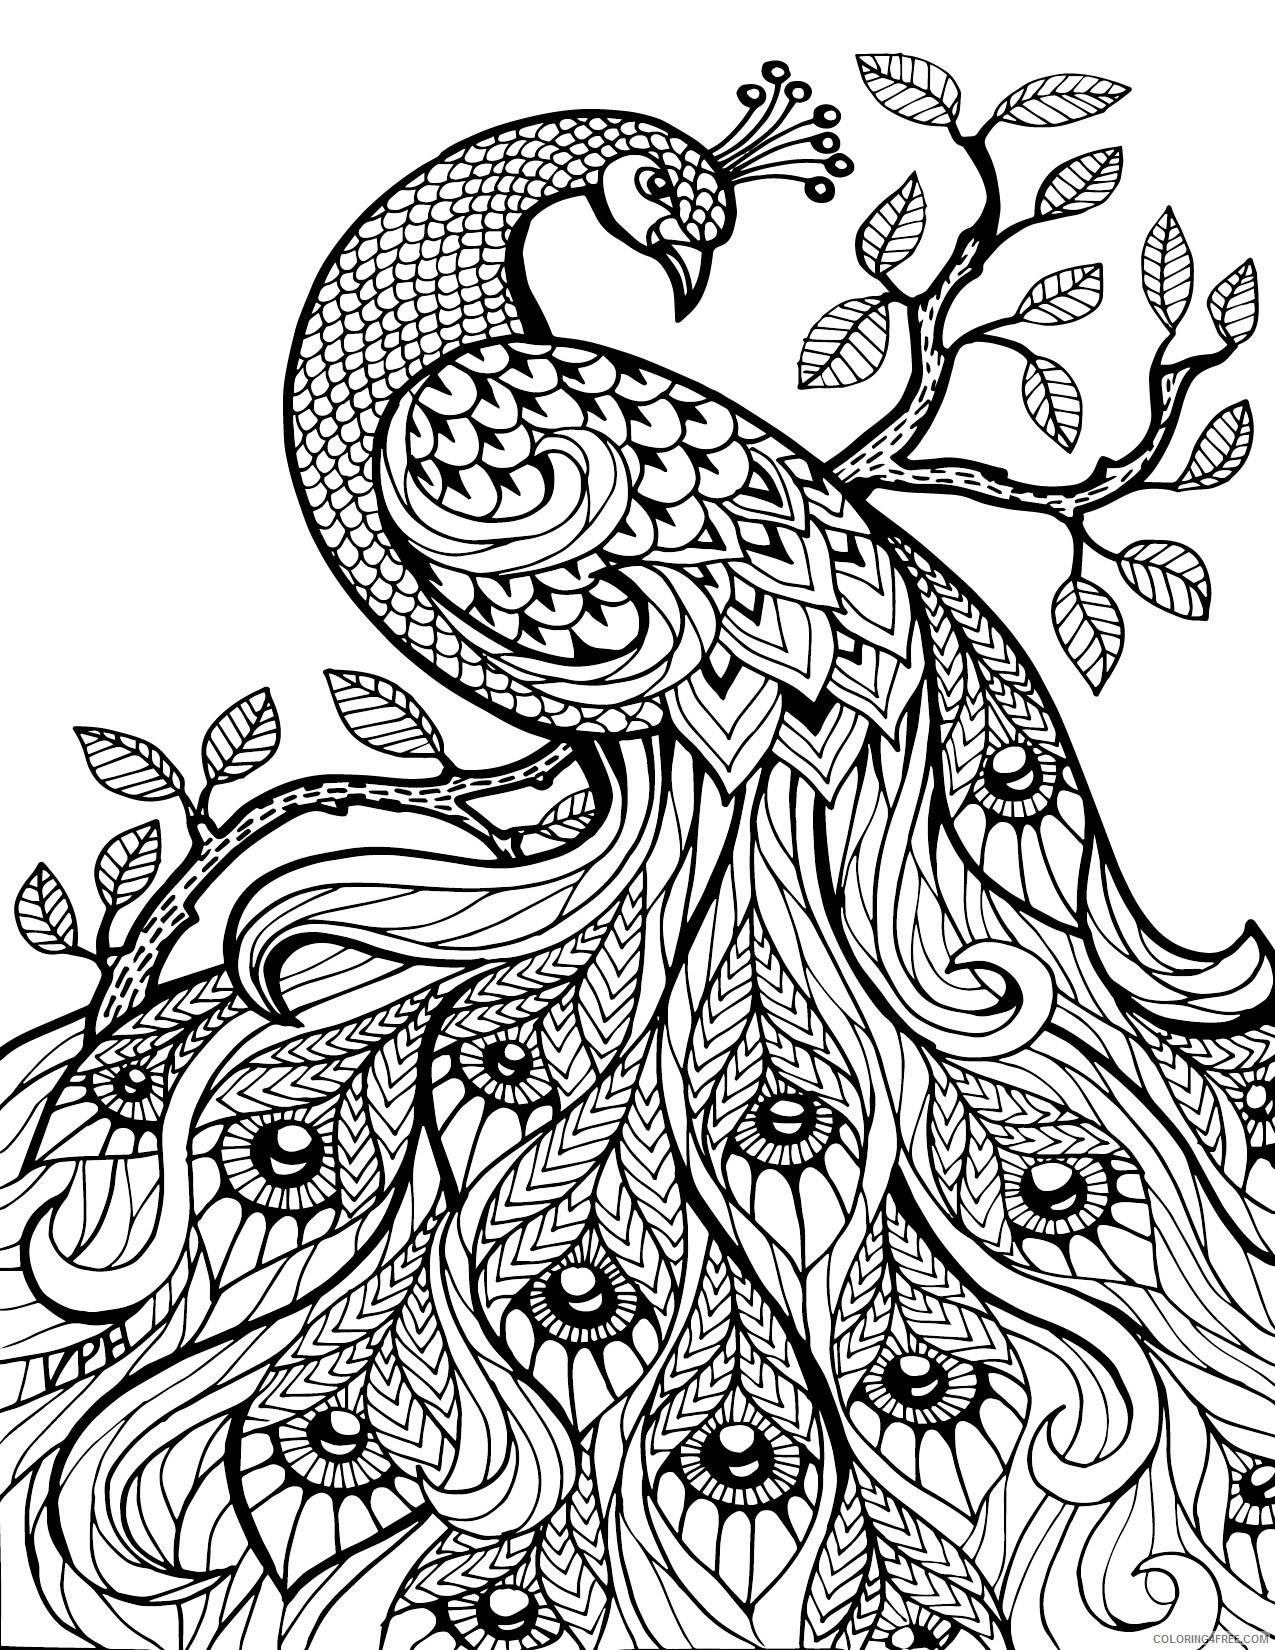 adult coloring pages peacock Coloring4free